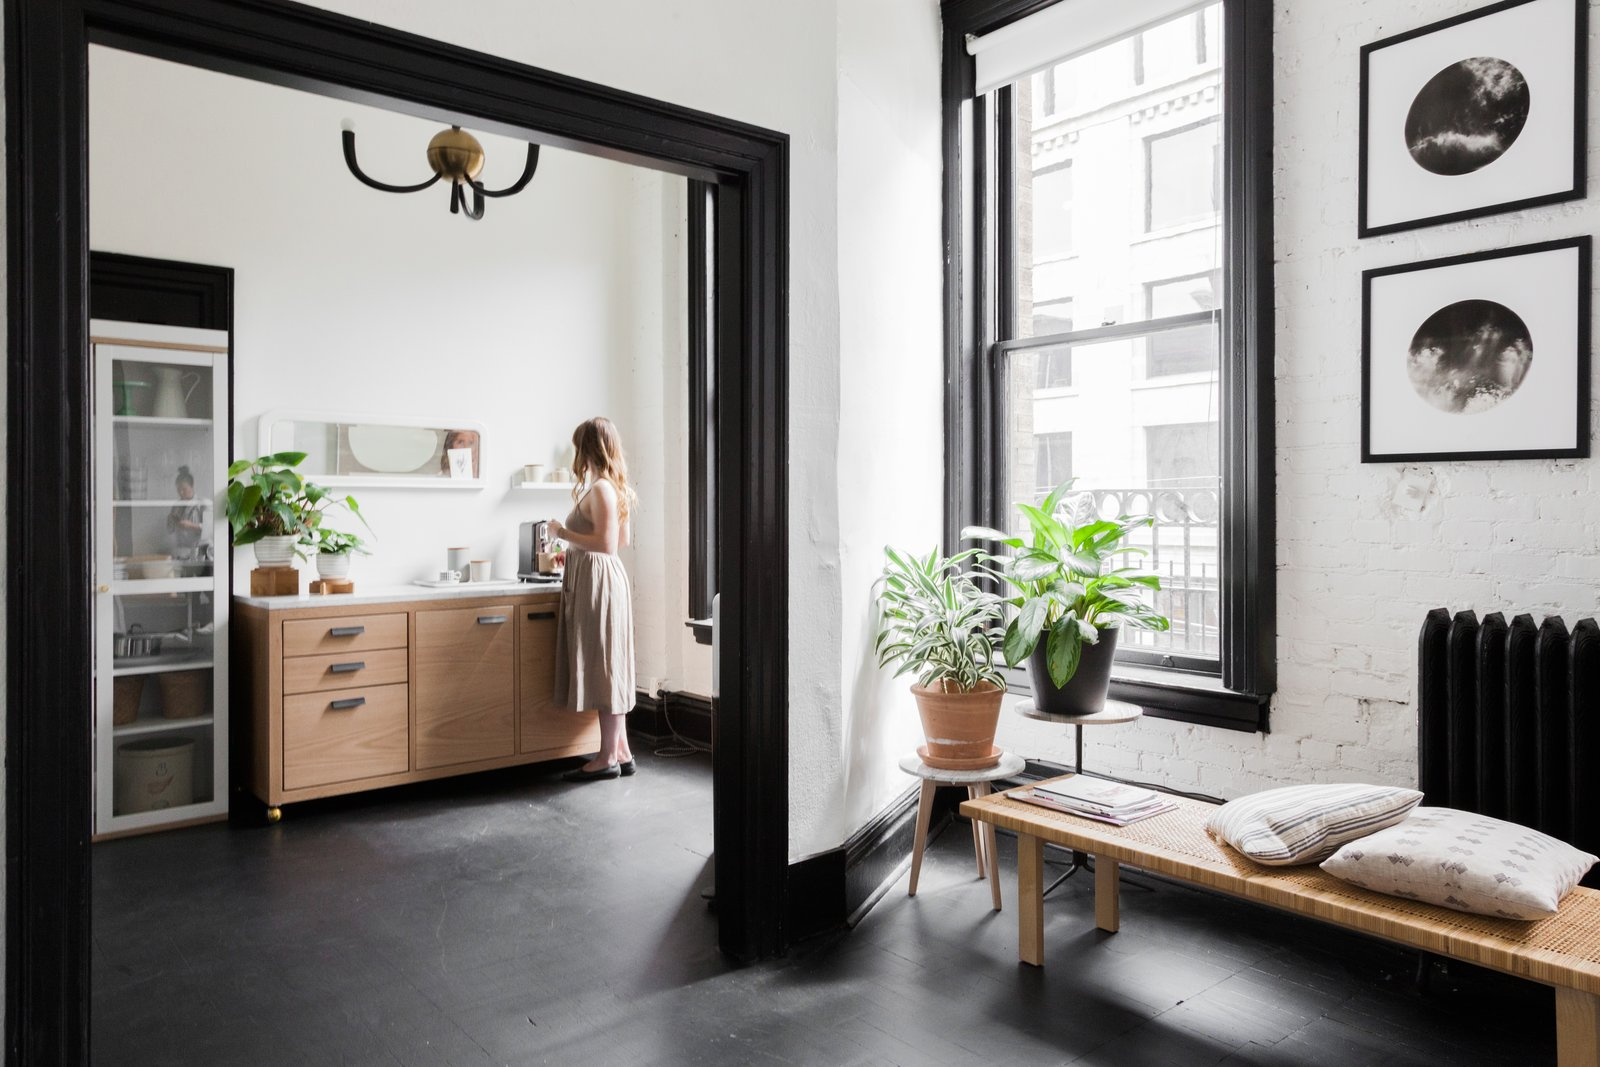 Jackson St. Studio by Coco Kelley